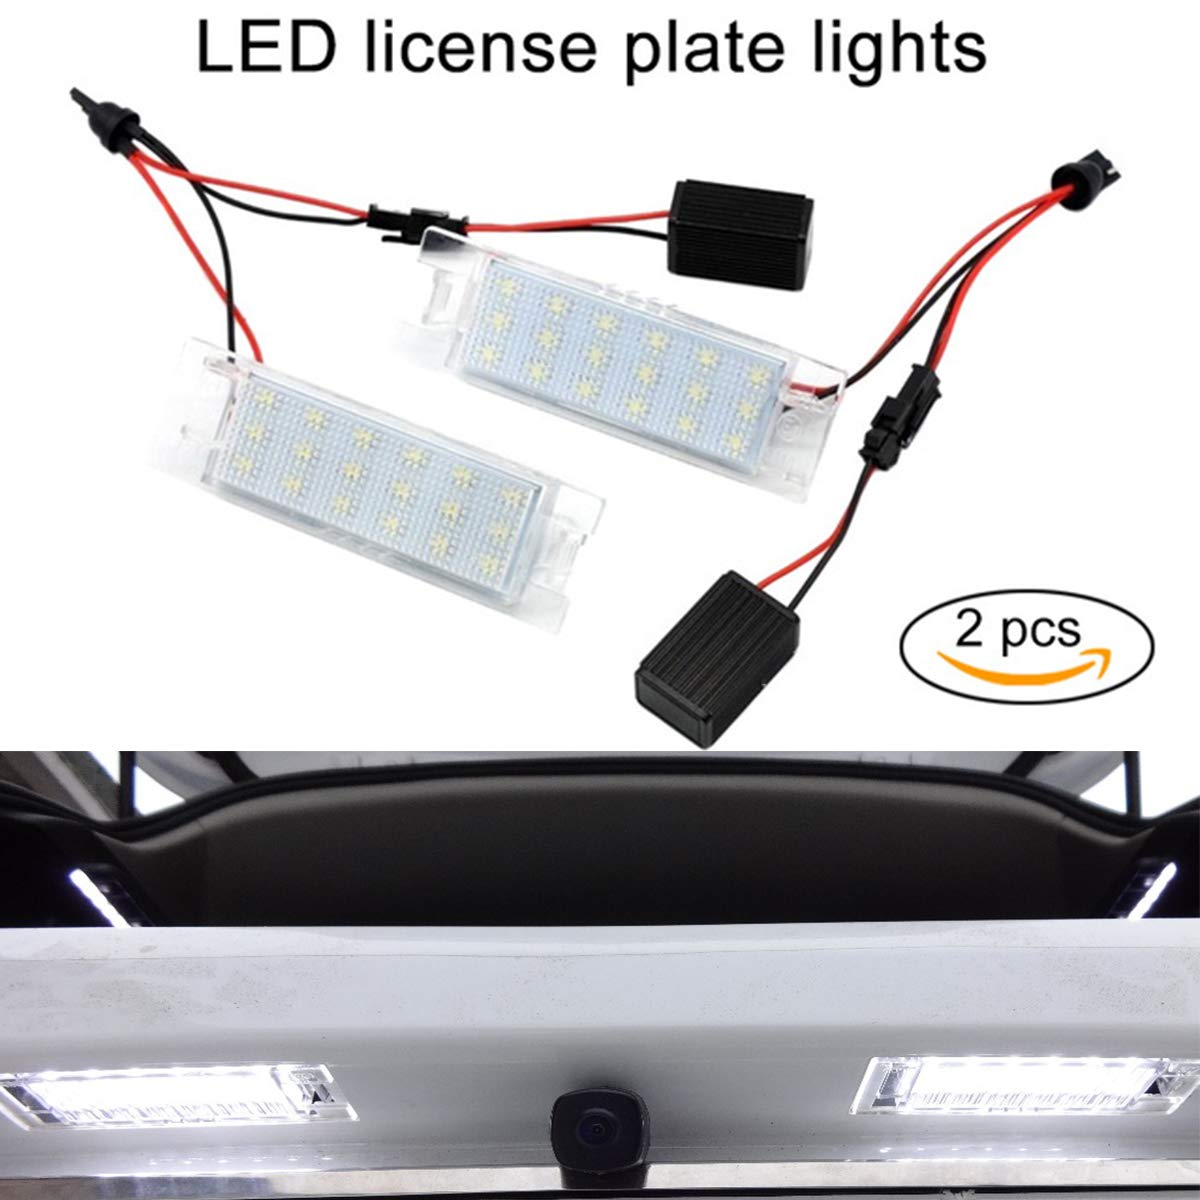 GOFORJUMP 2piece LED License Plate Light Lamp for O/pel Aauxhall Adam Insignia Corsa C D Zafira B Astra H Tigra B Vectra C Meriva A B